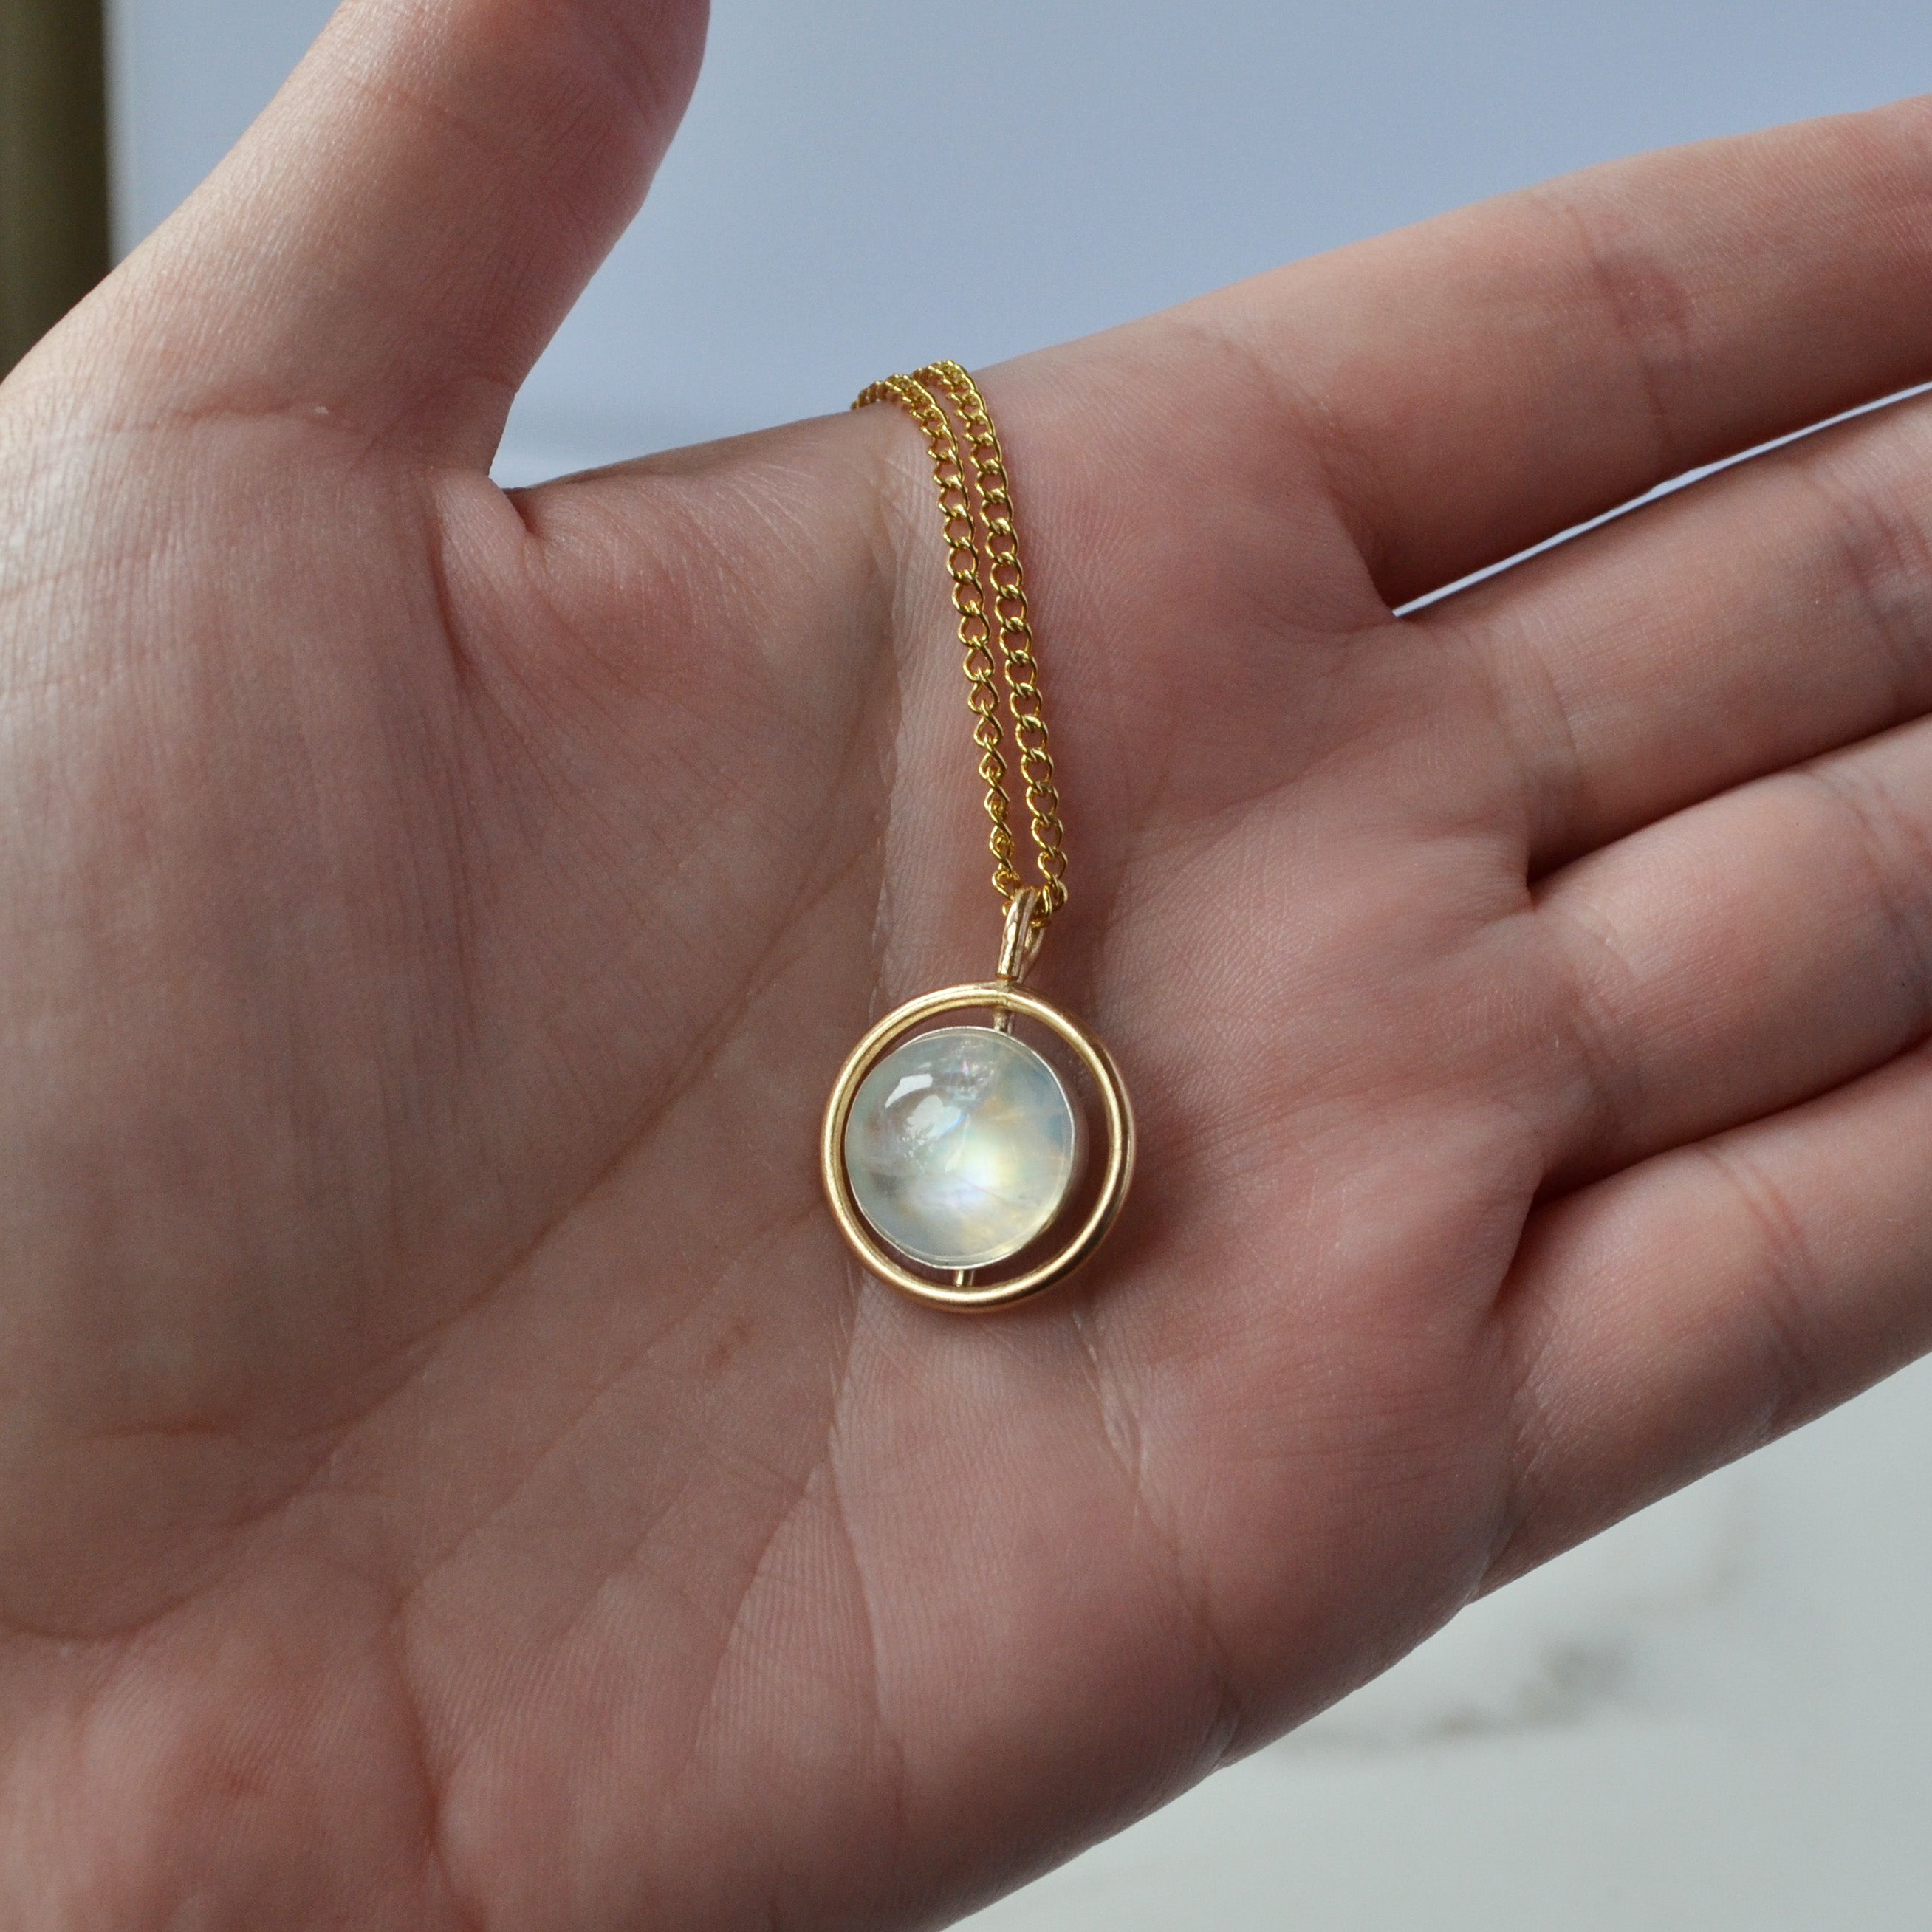 Moonstone Eclipse Necklace